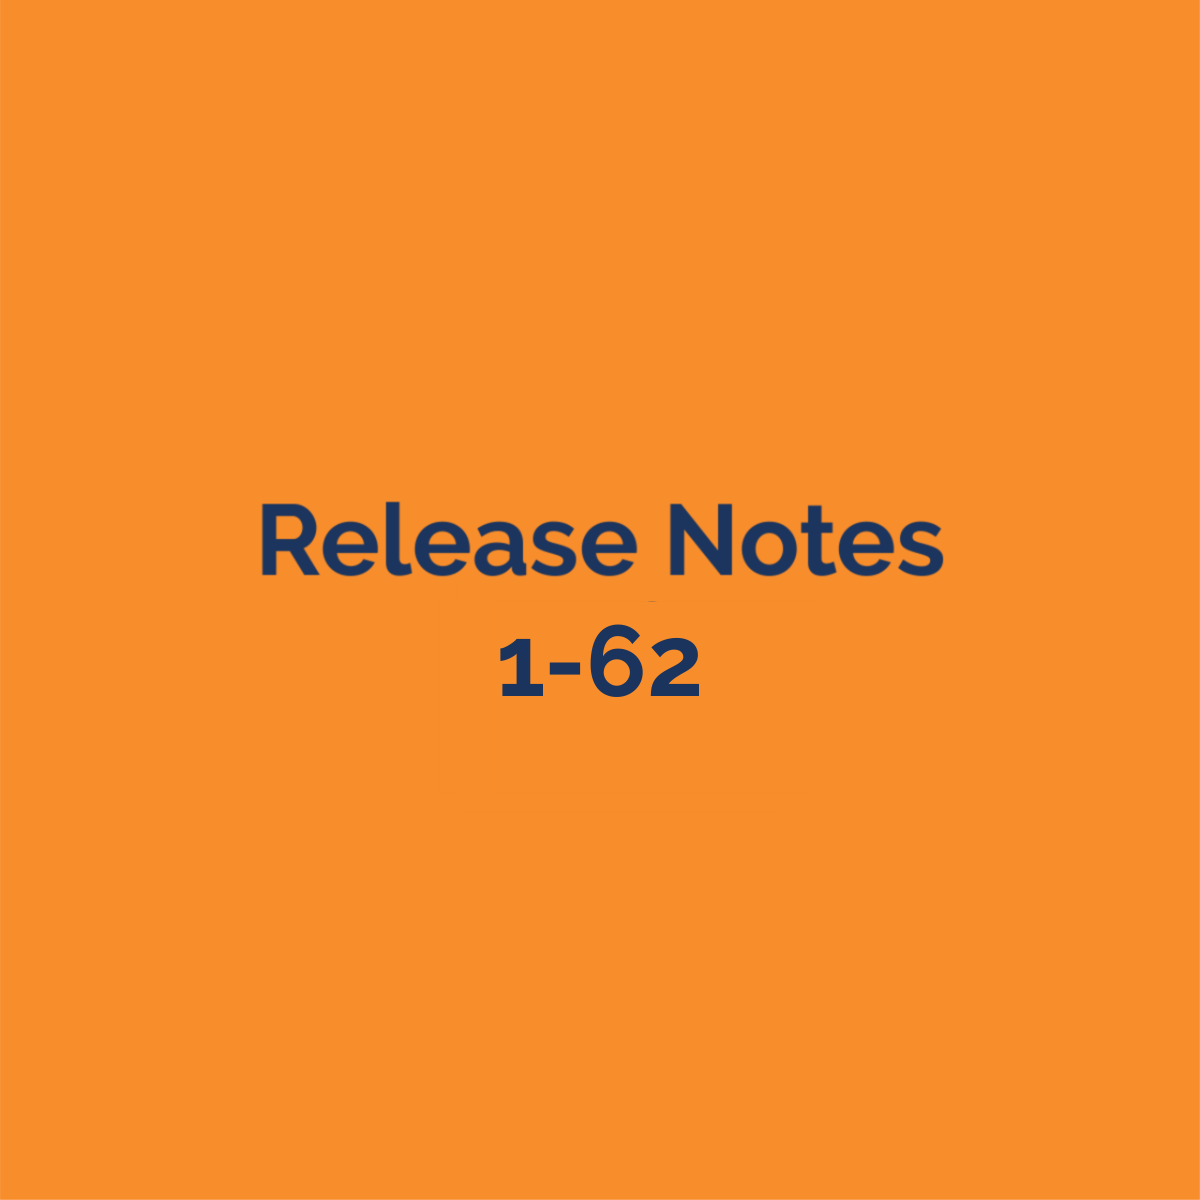 release notes 1-62